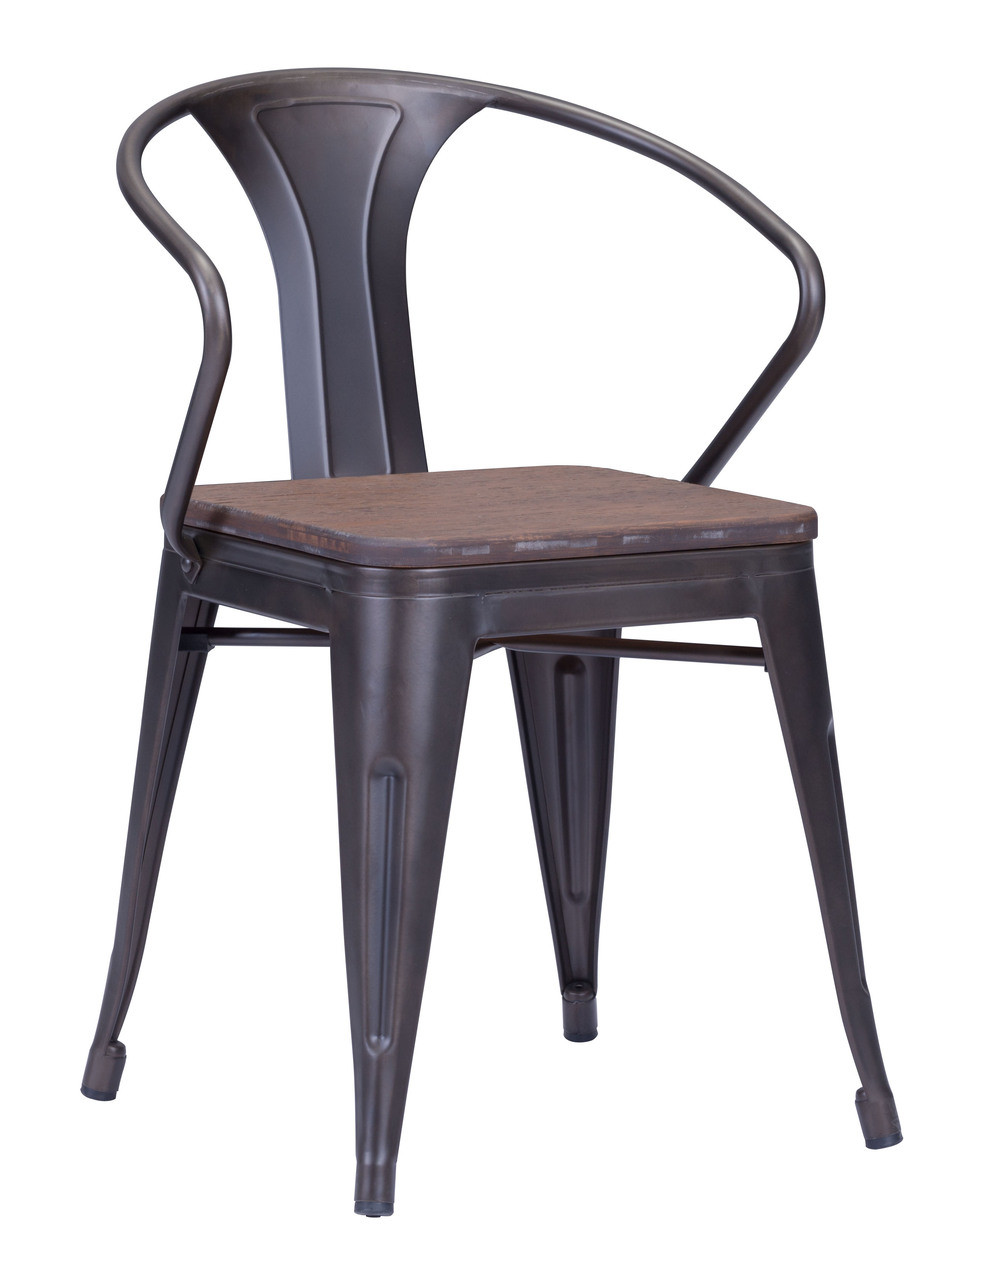 Zuo Helix Dining Chair With Wood Seat Gunmetal Chairs